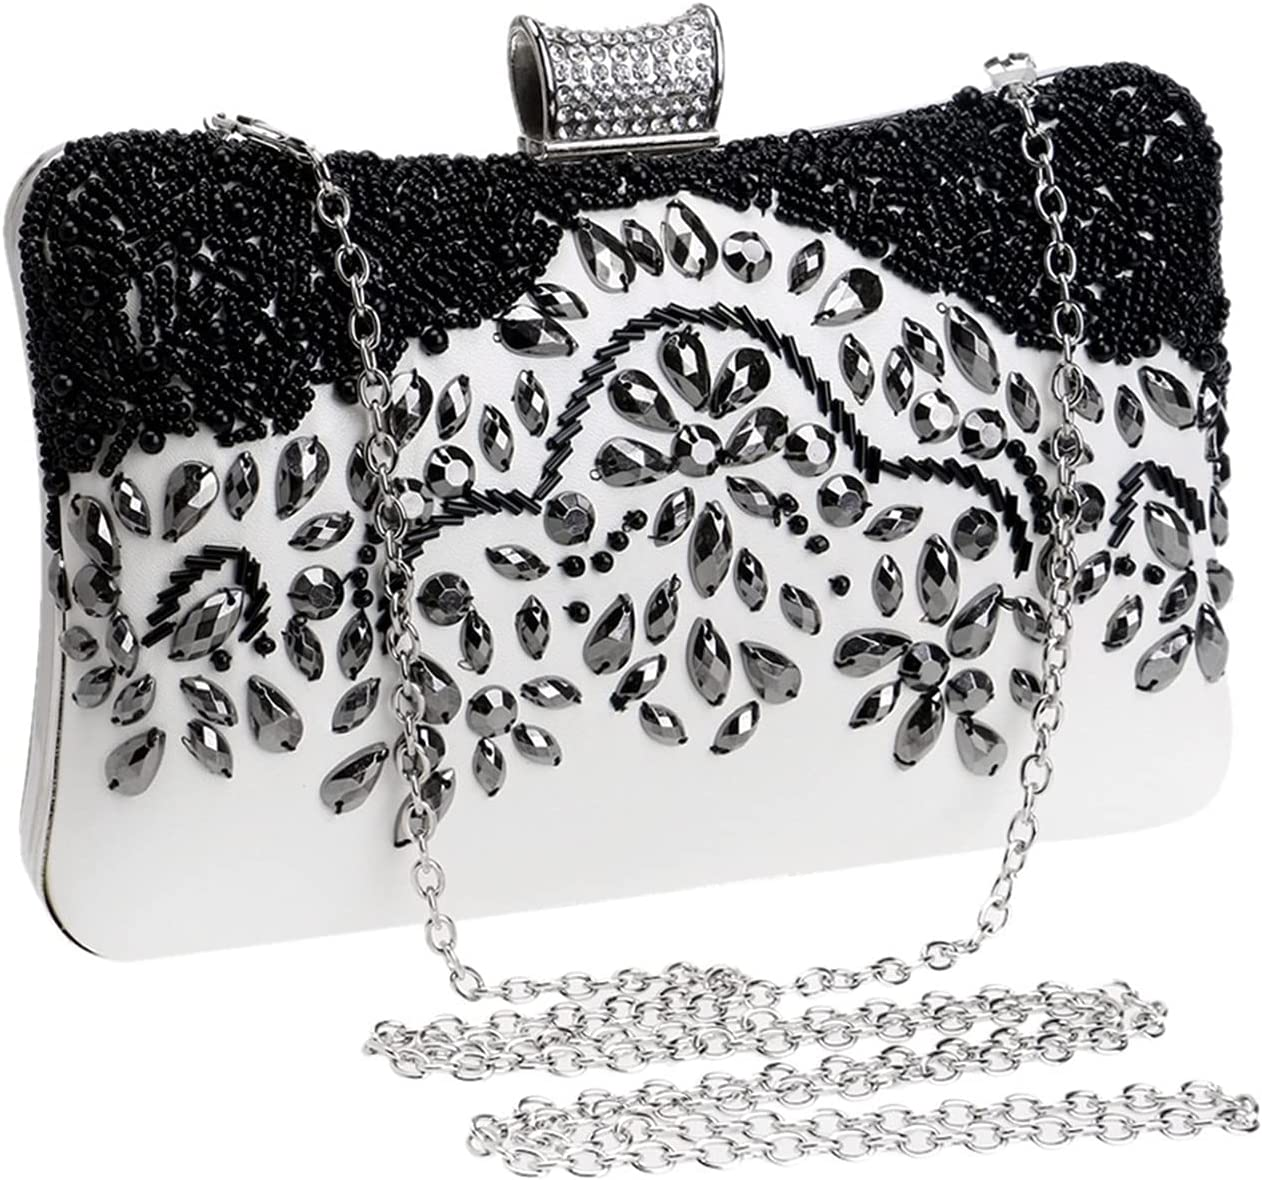 Evening Bag Leather Evening Bags Vintage Handmade Beading Party Clutch Wedding Women Black Diamonds Purse (Color : Black, Size : Small)